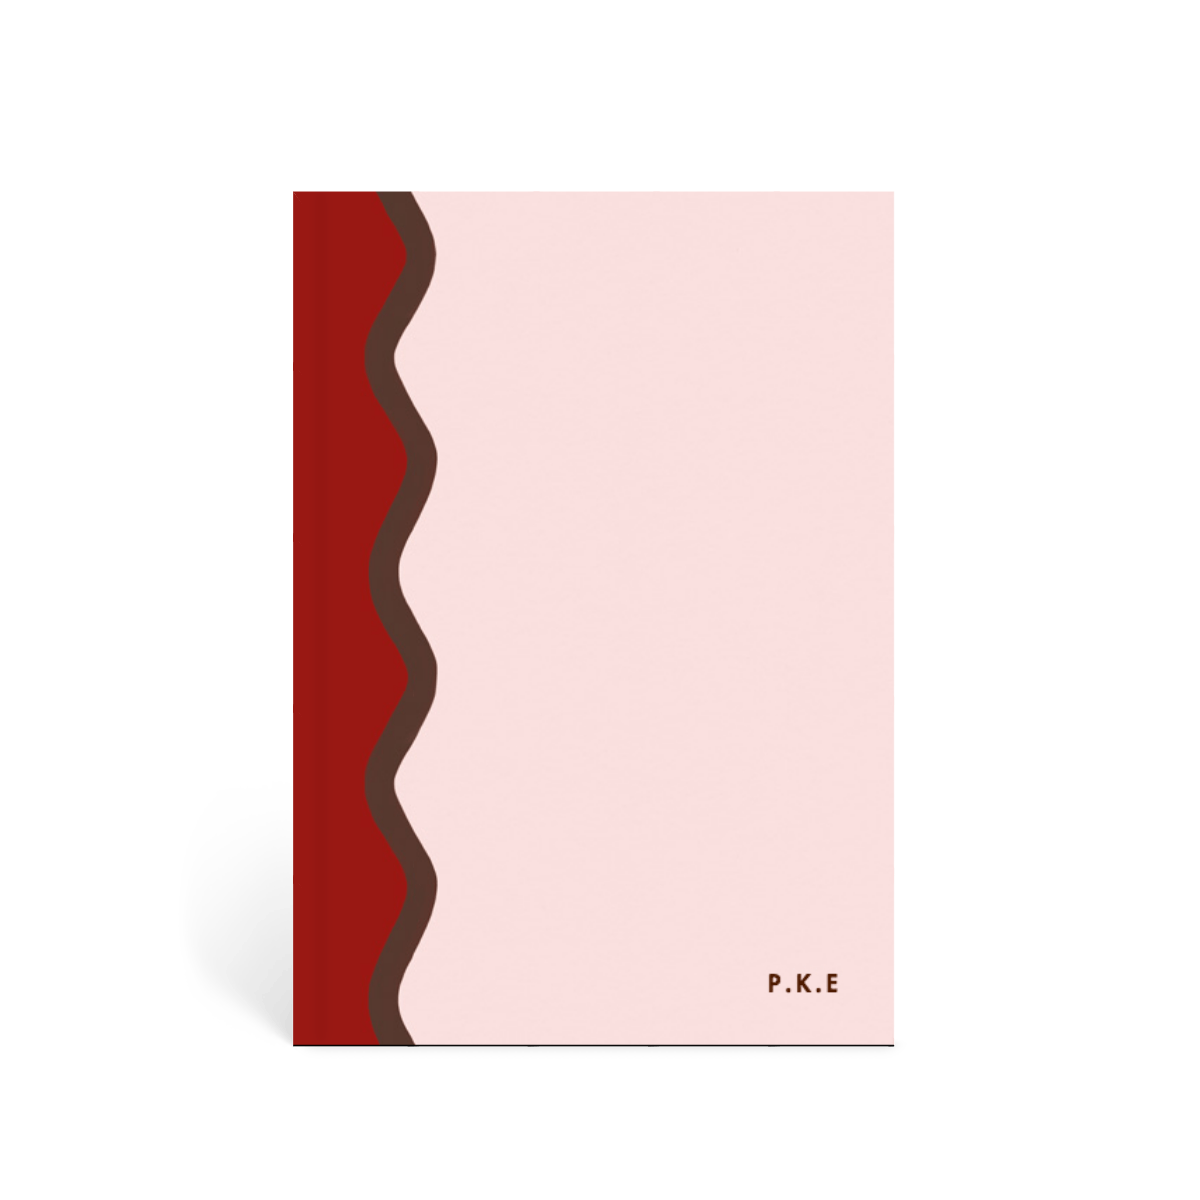 Https%3a%2f%2fwww.papier.com%2fproduct image%2f75562%2f25%2fscallop spine 17717 front 1557496392.png?ixlib=rb 1.1